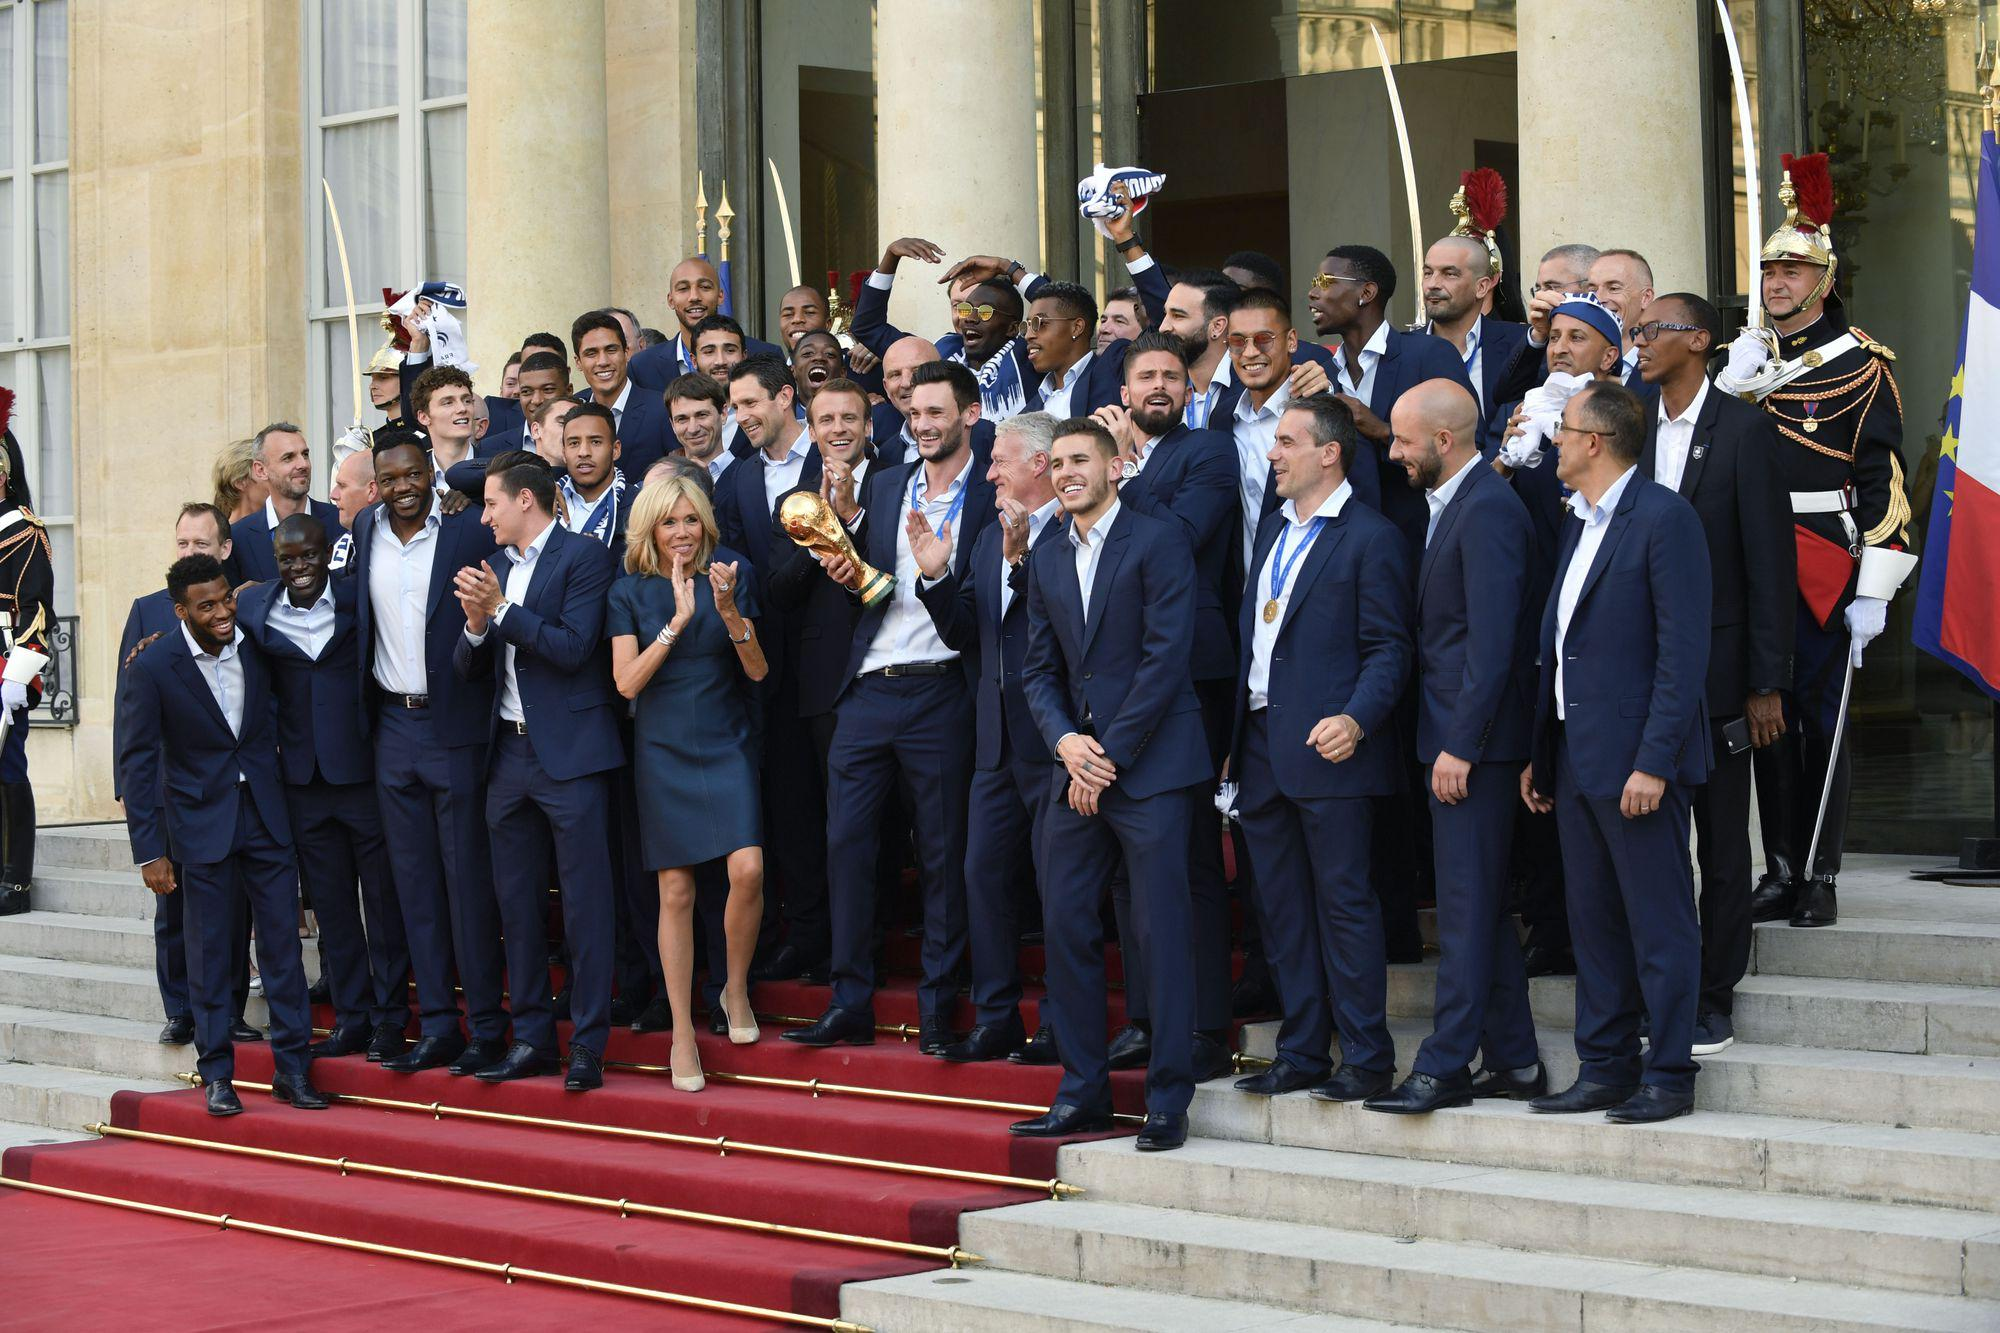 epa06893544 French President Emmanuel Macron and French First Lady Brigitte Macron with the France's national soccer team players at the Elysee Palace, in Paris, 16 July 2018. France won 4-2 the FIFA World Cup 2018 final against Croatia in Moscow, on 15 July.  EPA-EFE/JULIEN DE ROSA